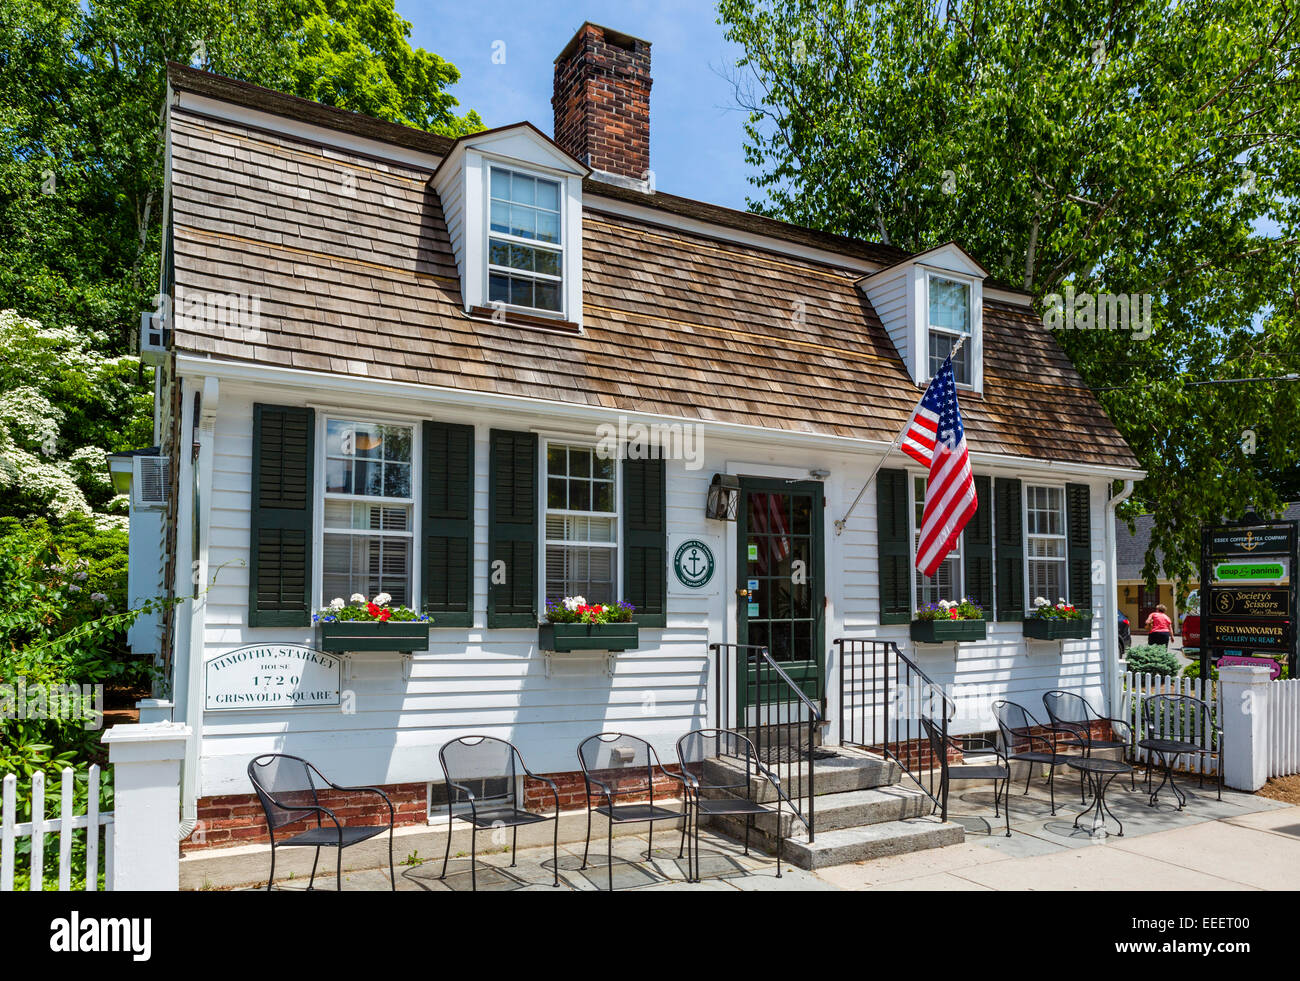 Historic Timothy Starkey House (1720) in the old town, Essex, Connecticut, USA Stock Photo